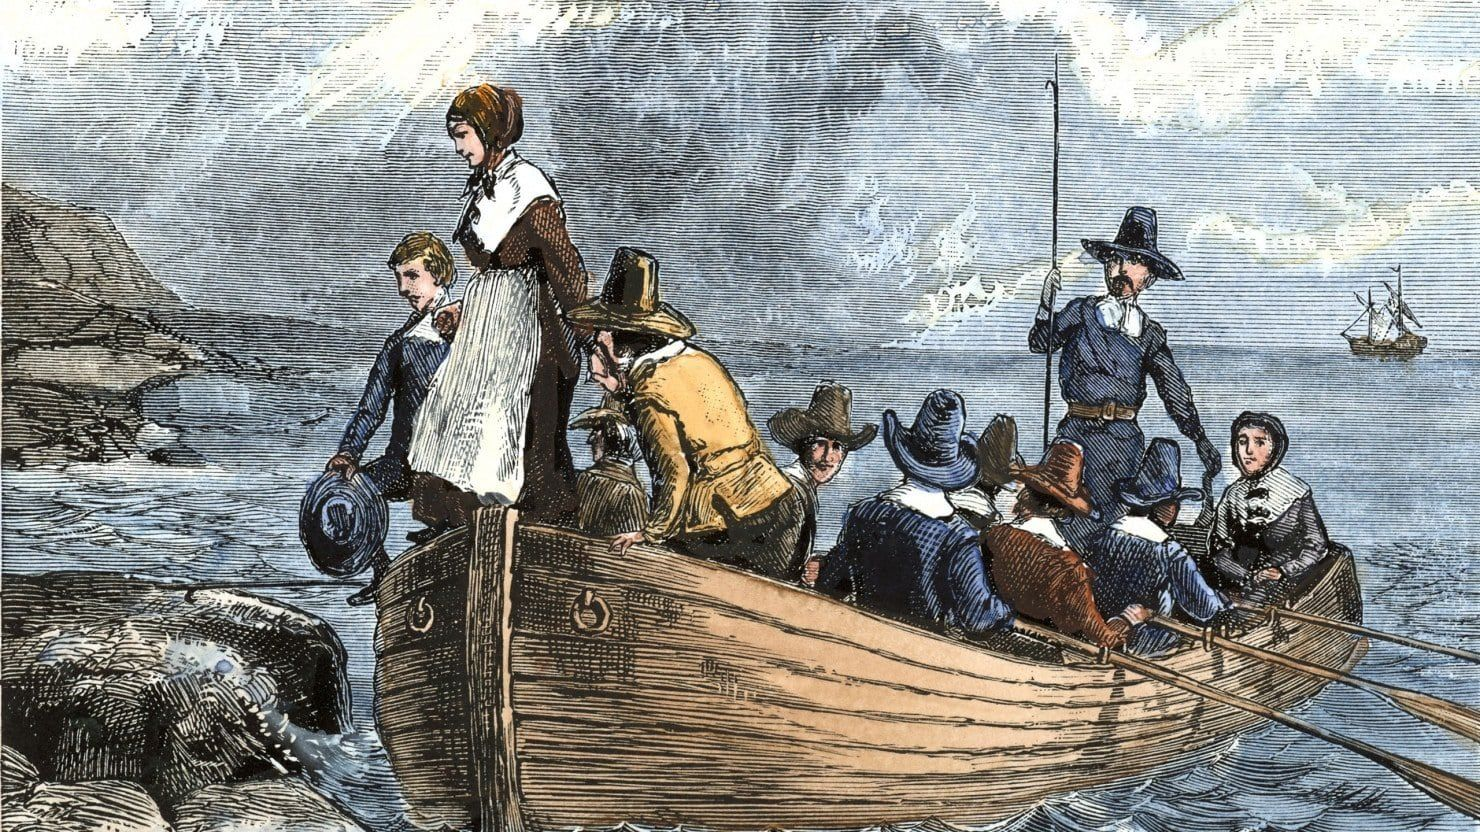 Pilgrims Sailed through Ocean to America